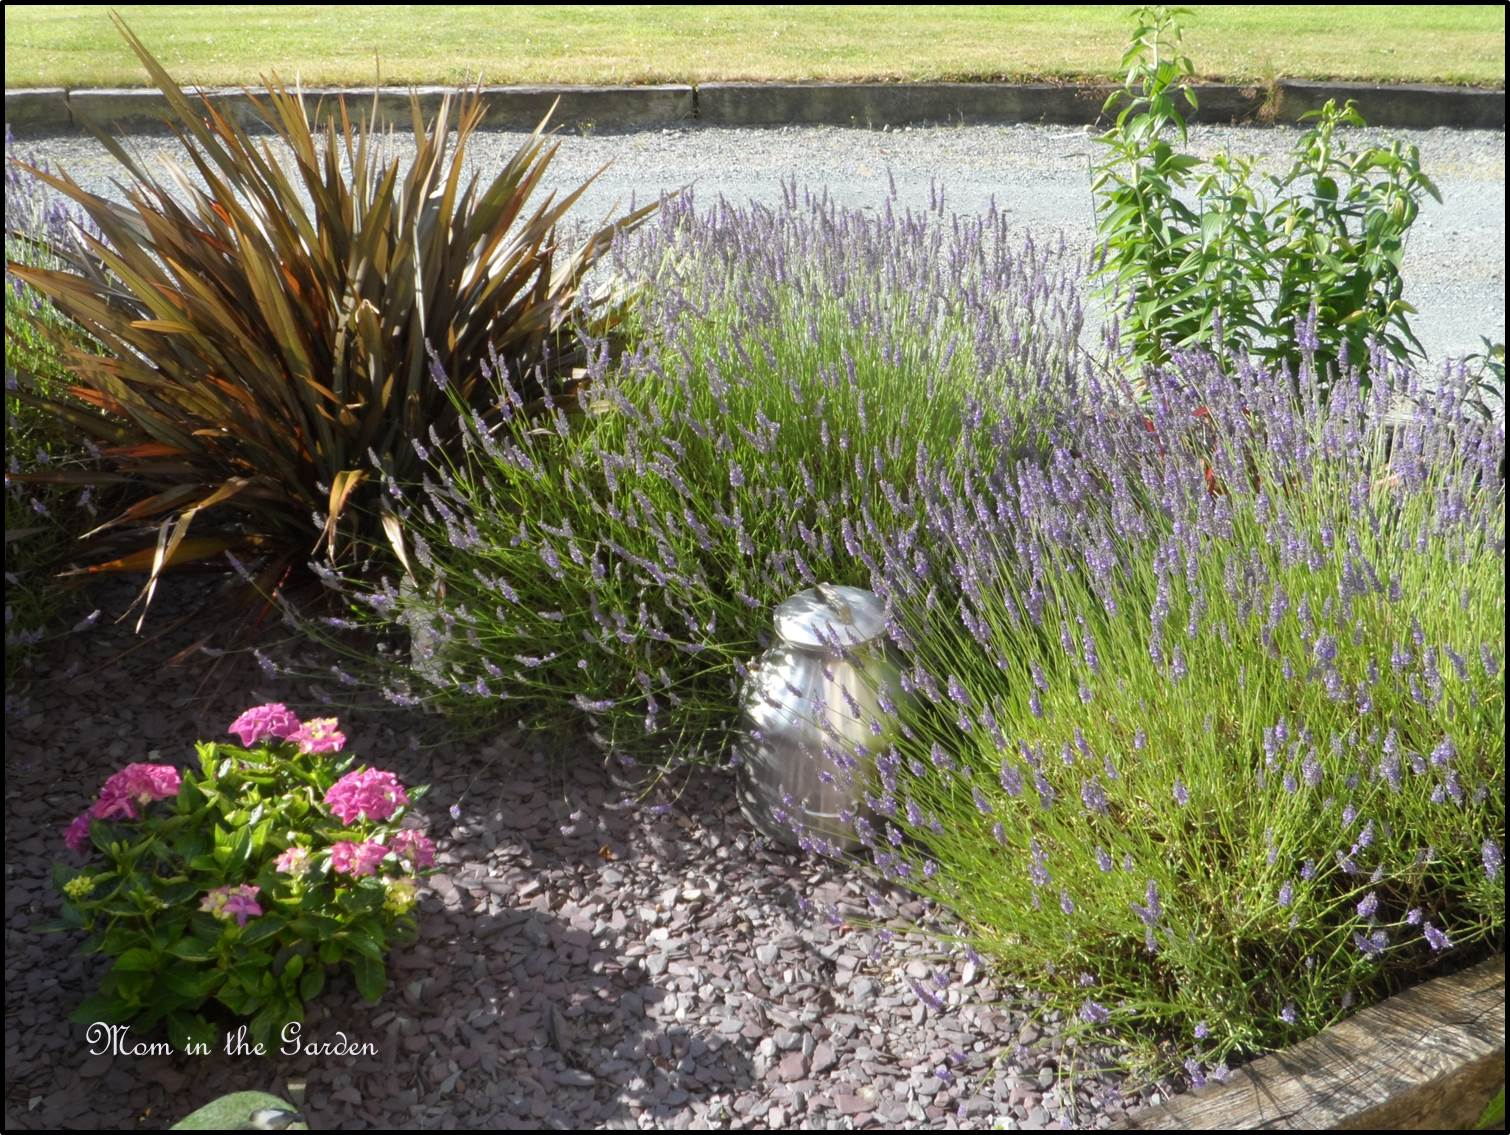 Full lavender garden view with milk container